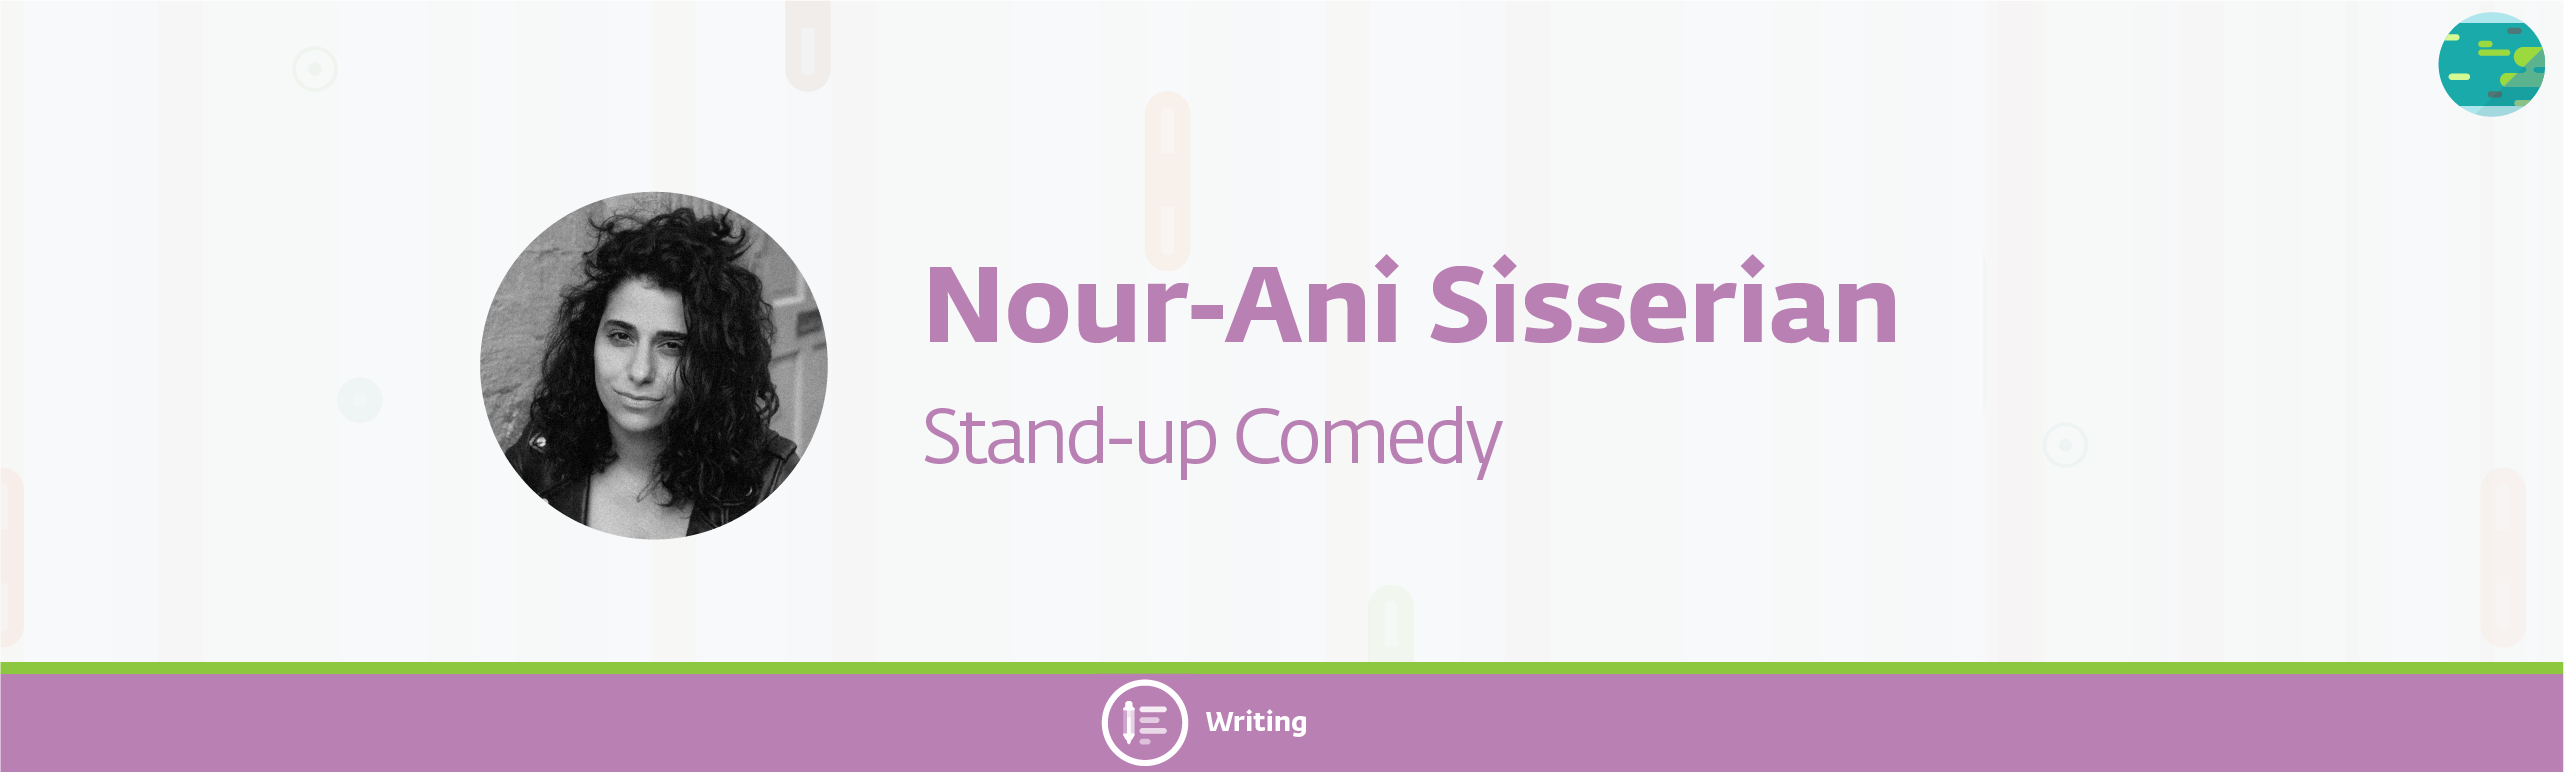 nor laber banner 22 - Stand-up Comedy